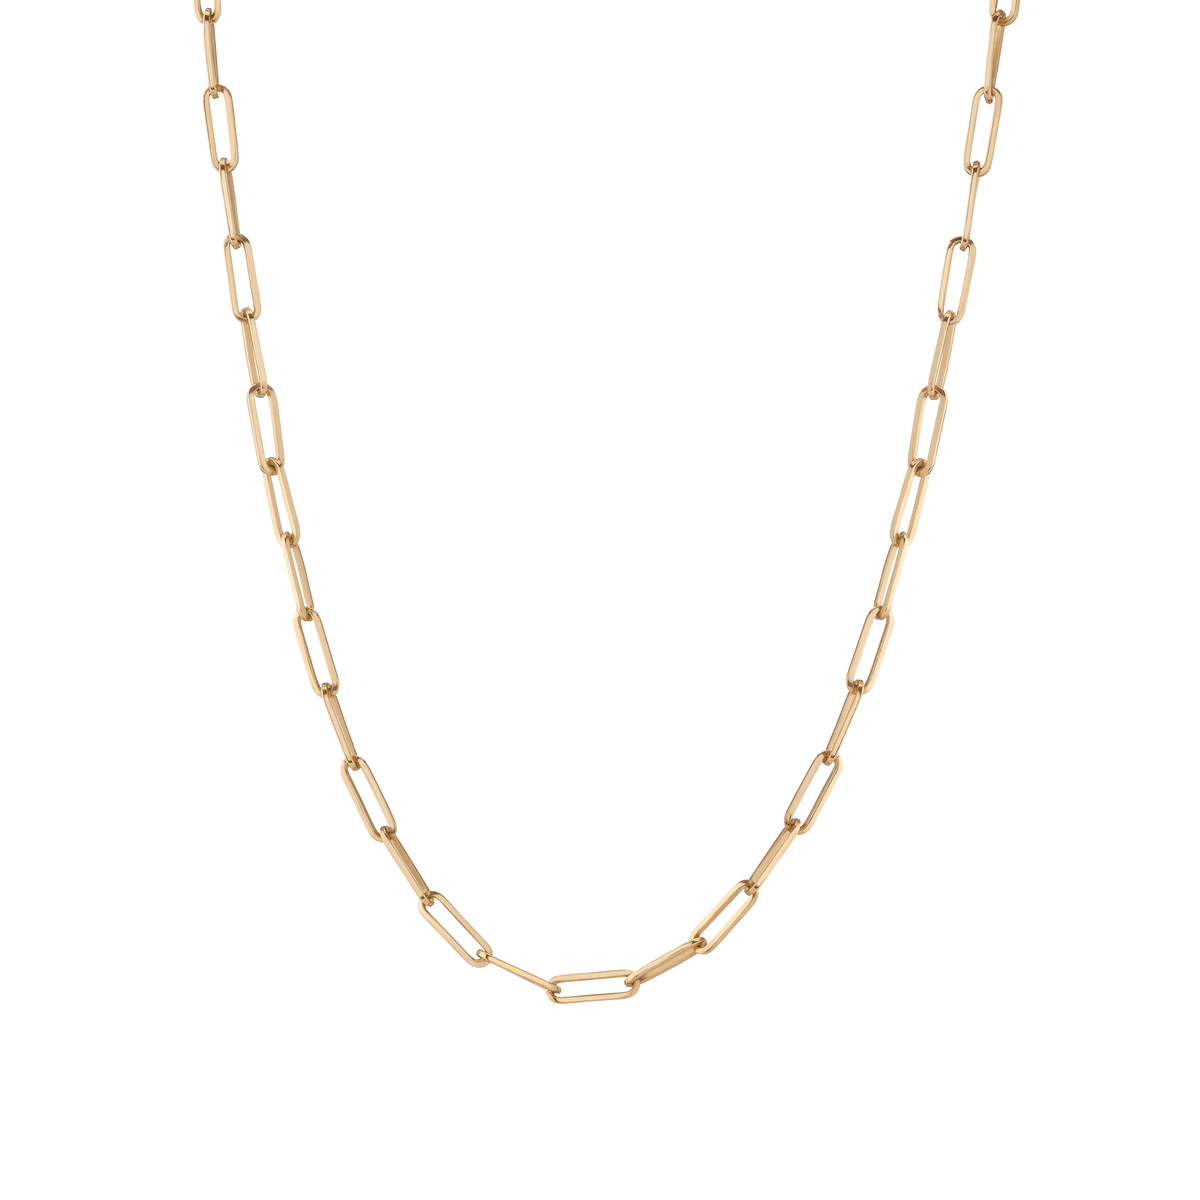 Large Chain Necklace Yellow Gold Vermeil 14K 14K Lightweight 18in 22in First